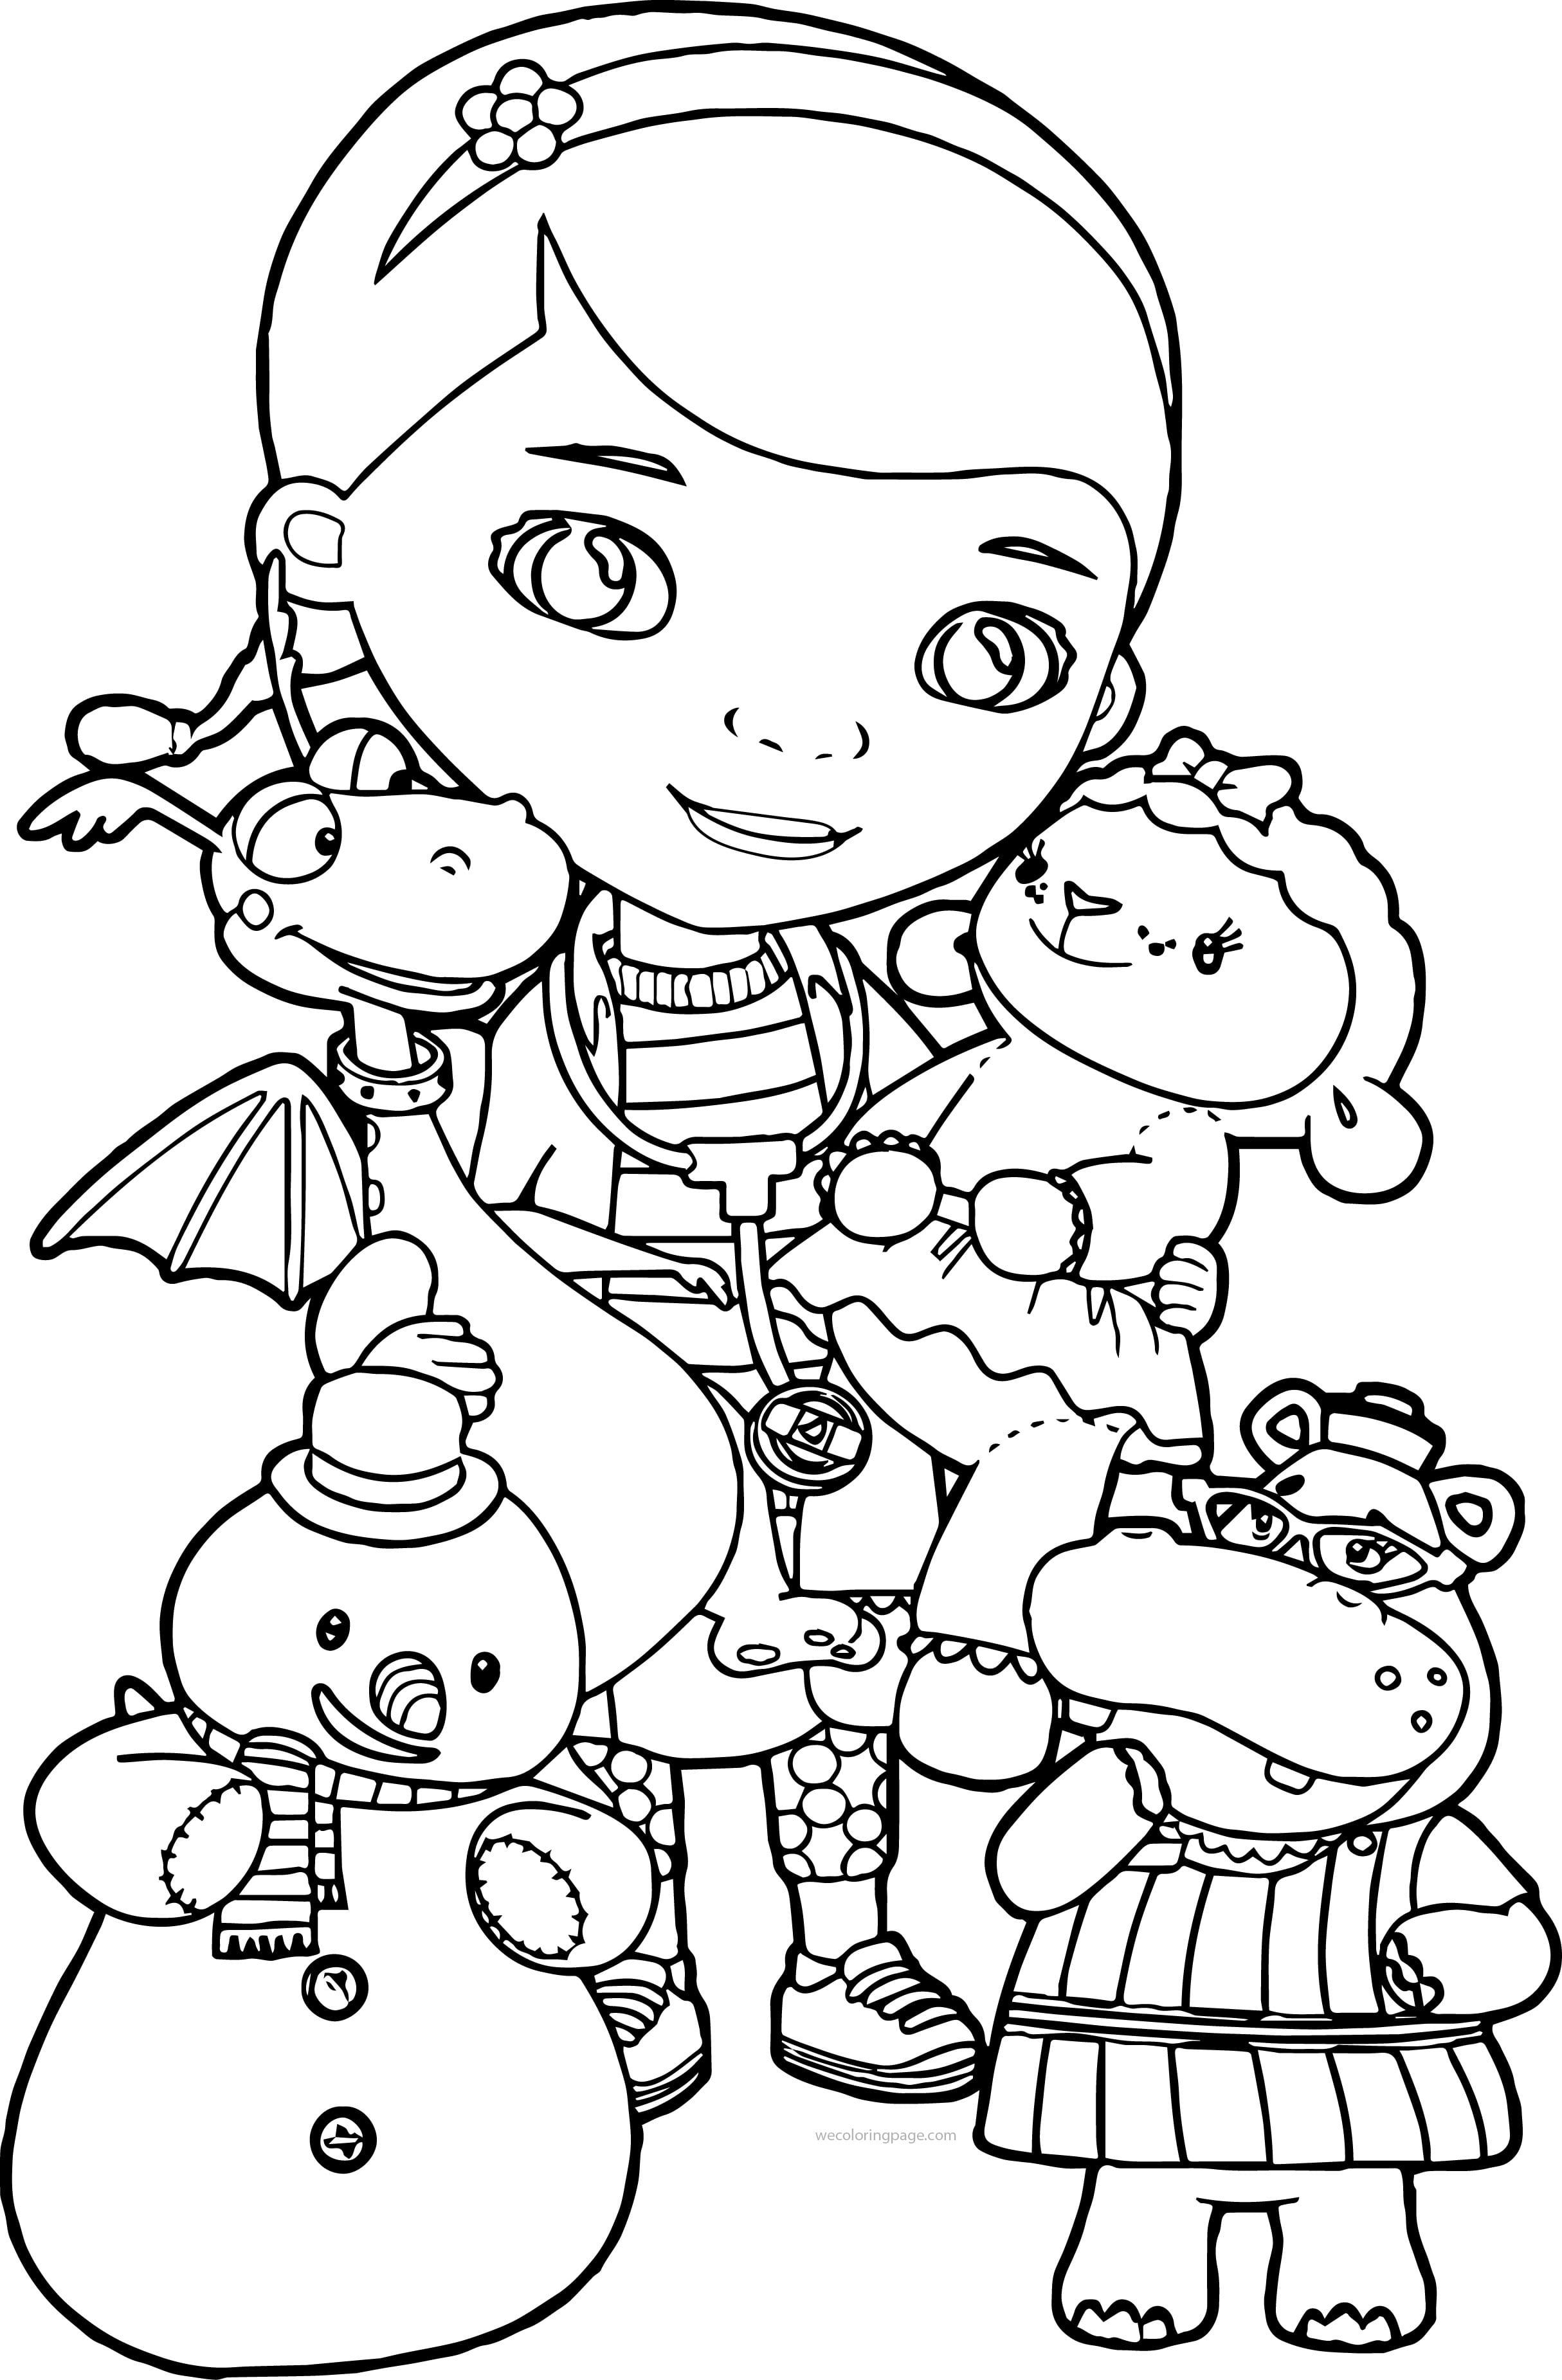 Doc Mcstuffins Coloring Pages Wecoloringpage At Page For